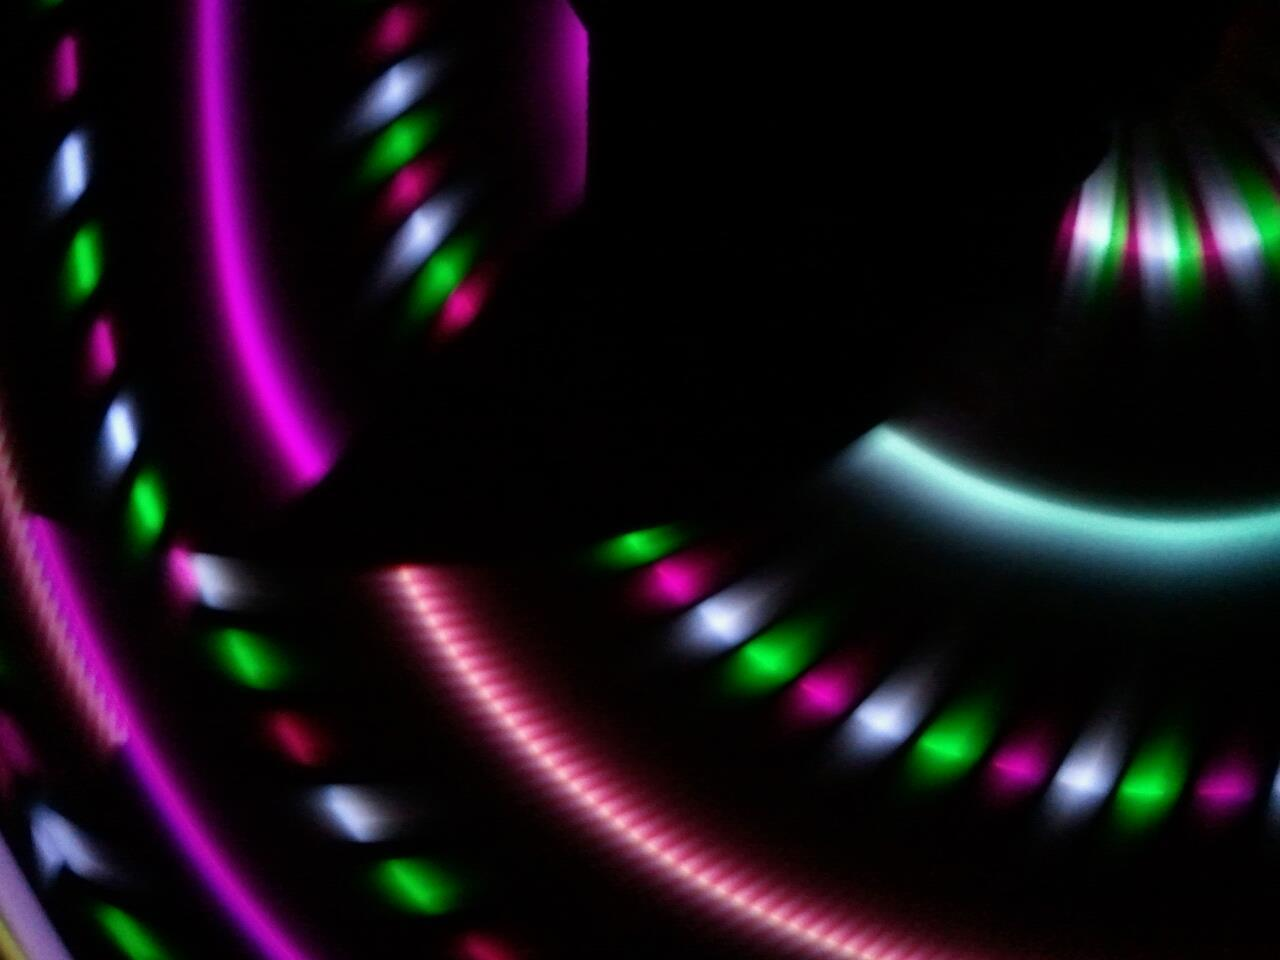 Moodhoops Prism LED Hula Hoop gravygraceface:  I'm in love with my new Moodhoop Prism <3 The colors are amazing and super bright <3